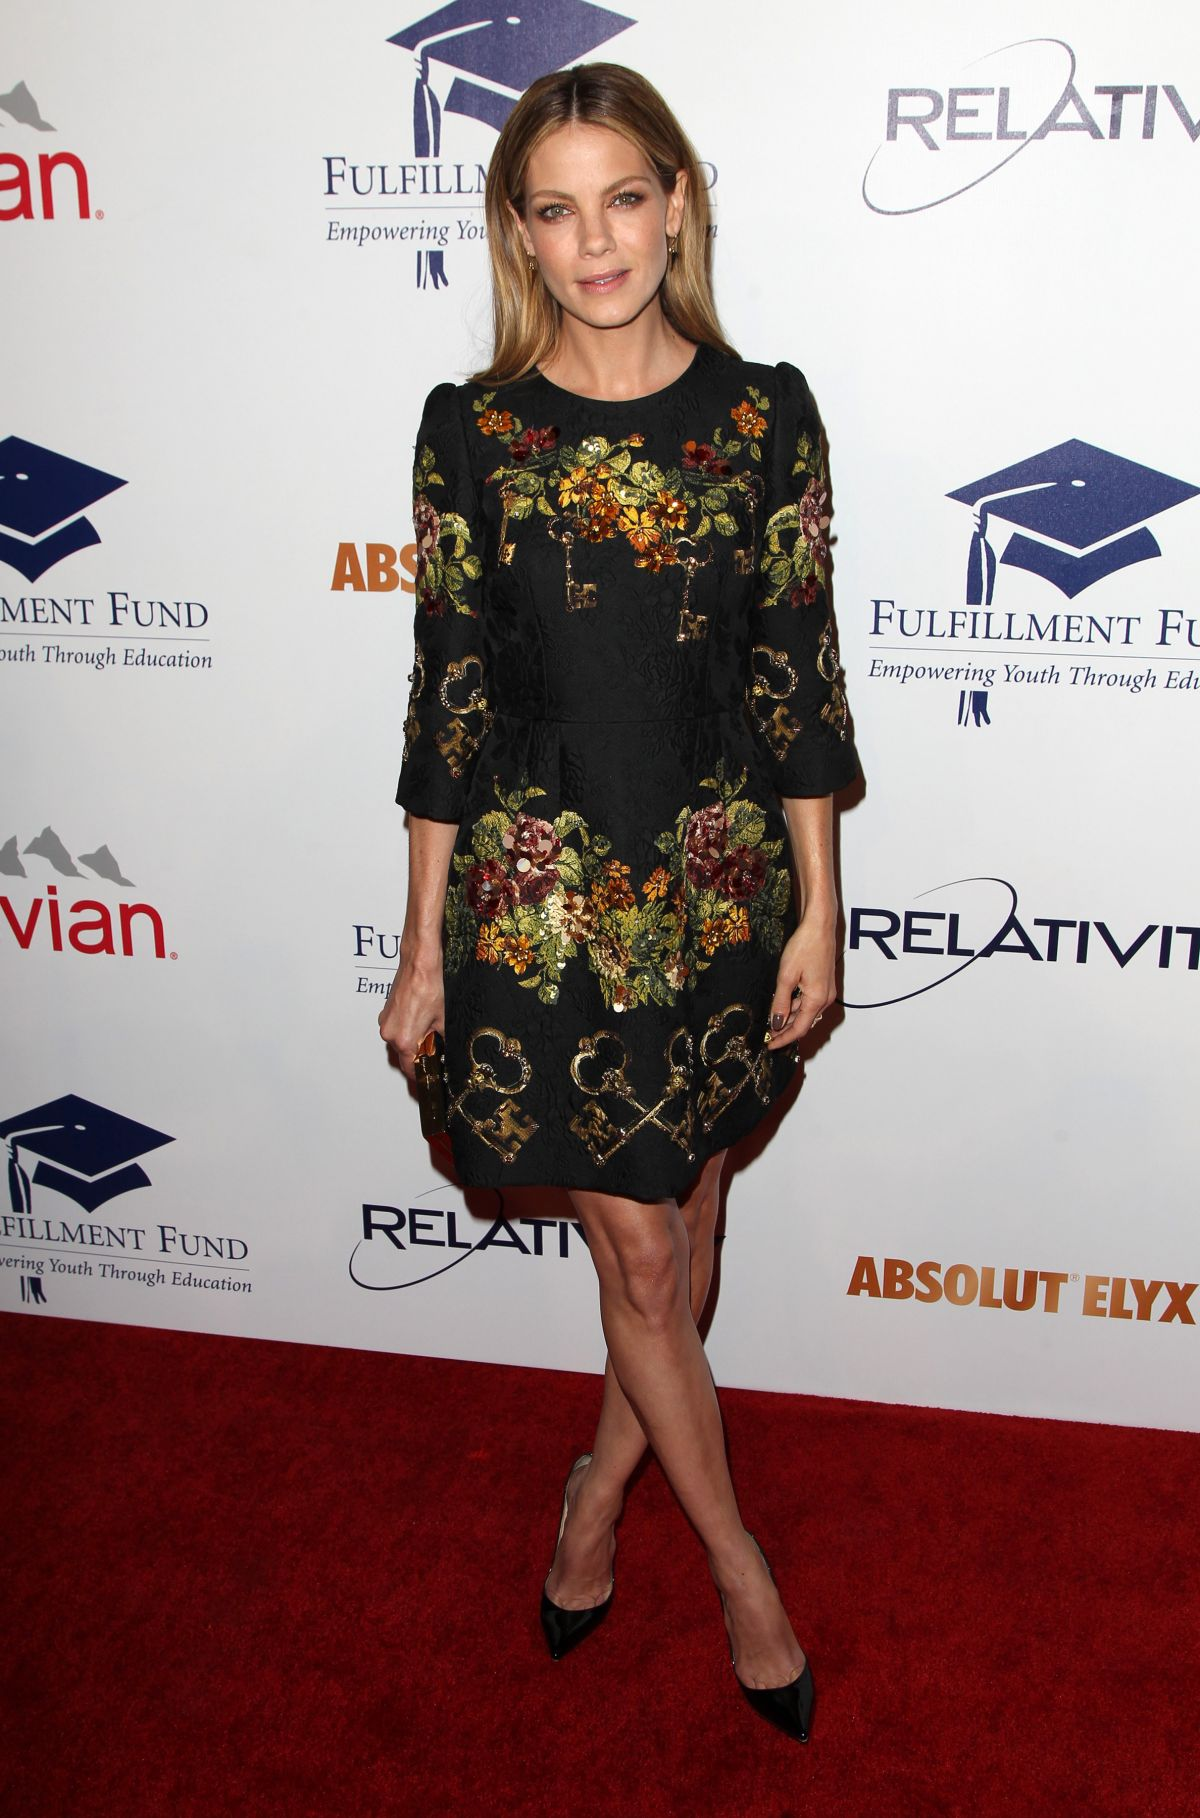 MICHELLE MONAGHAN at 20th Annual Fulfillment Fund Stars Benefit Gala in Beverly Hills